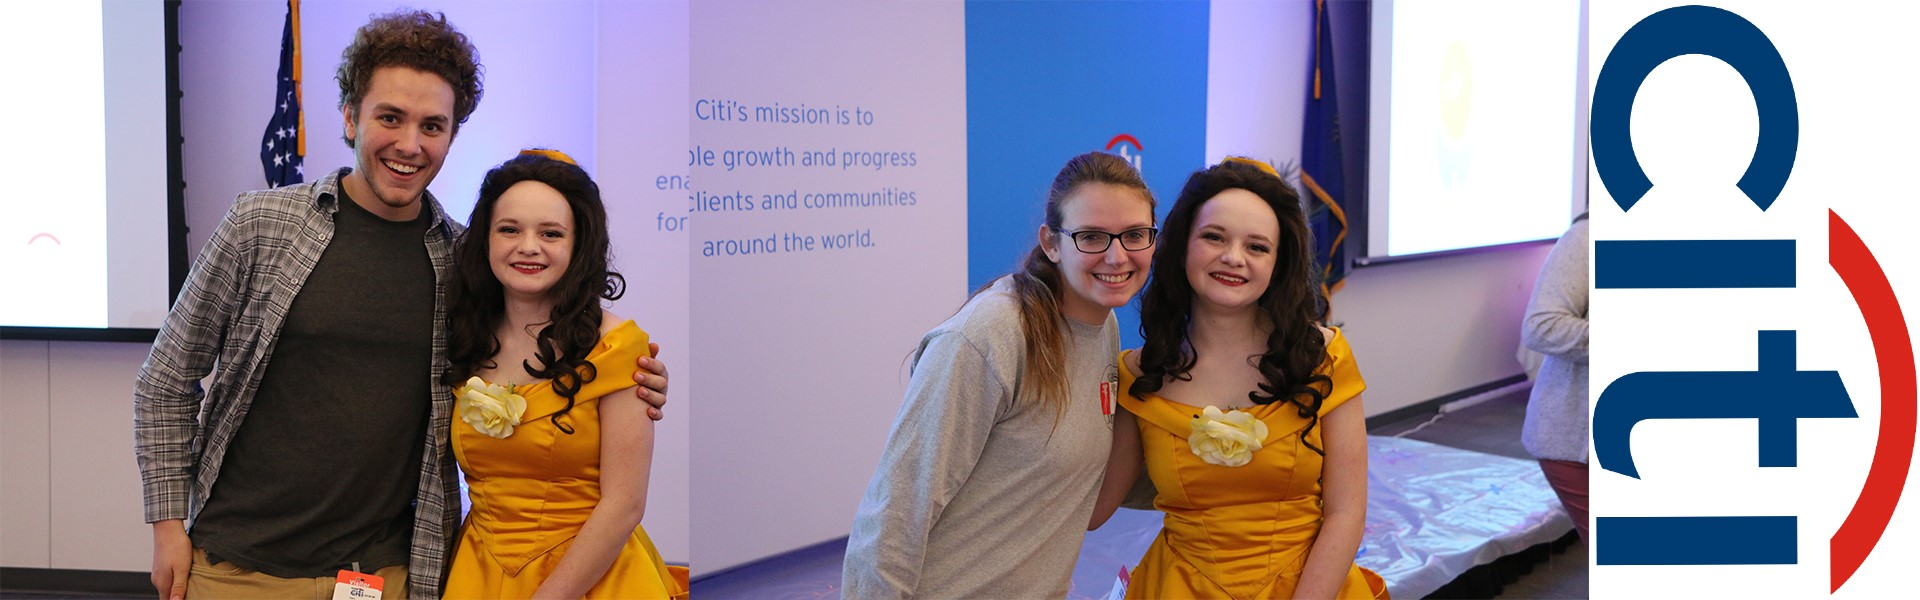 Students Help at Citi and Meet Belle